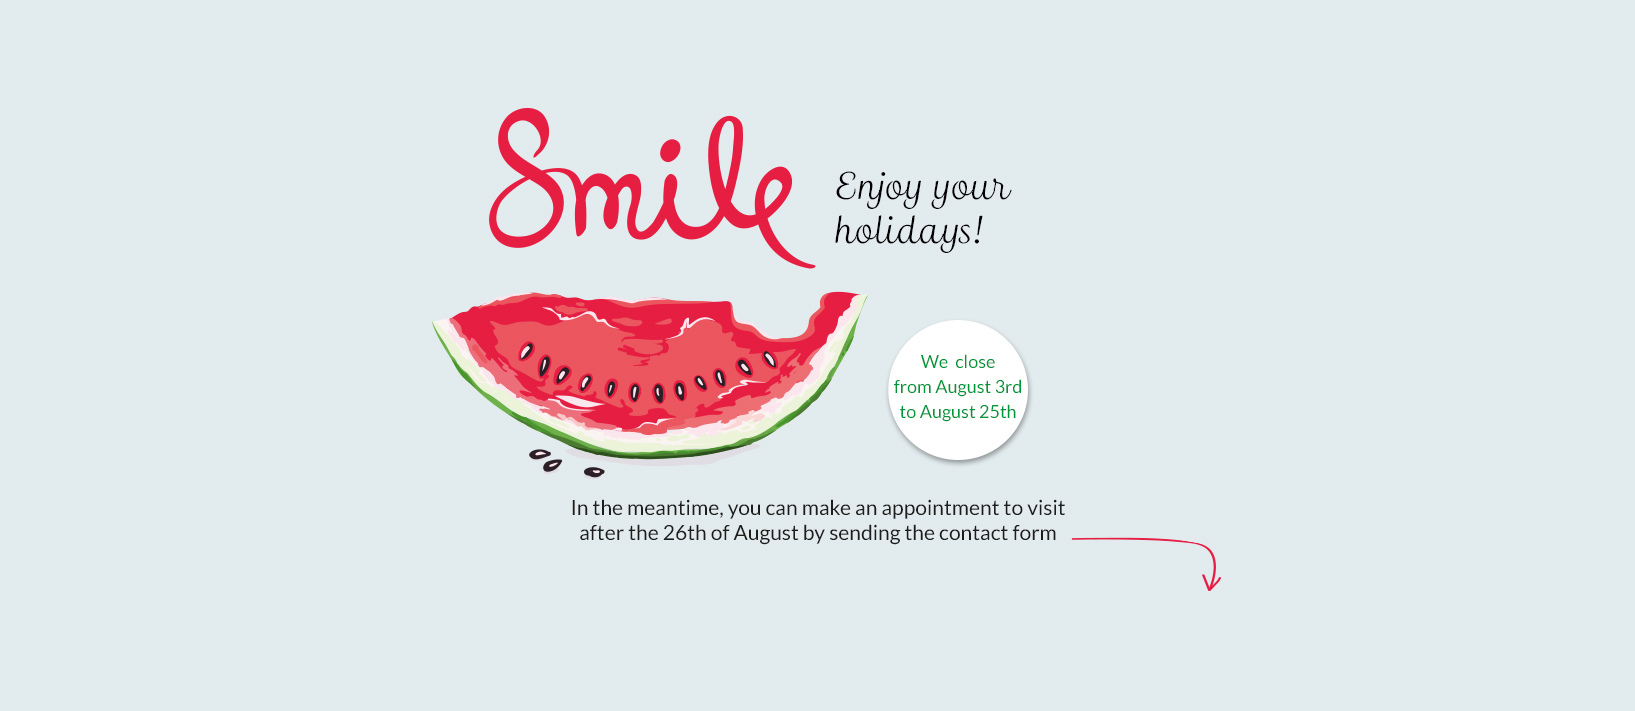 In ortodoncia tres torres clinica invisalign barcelona we closed for holidays from August 3 to 25, 2019